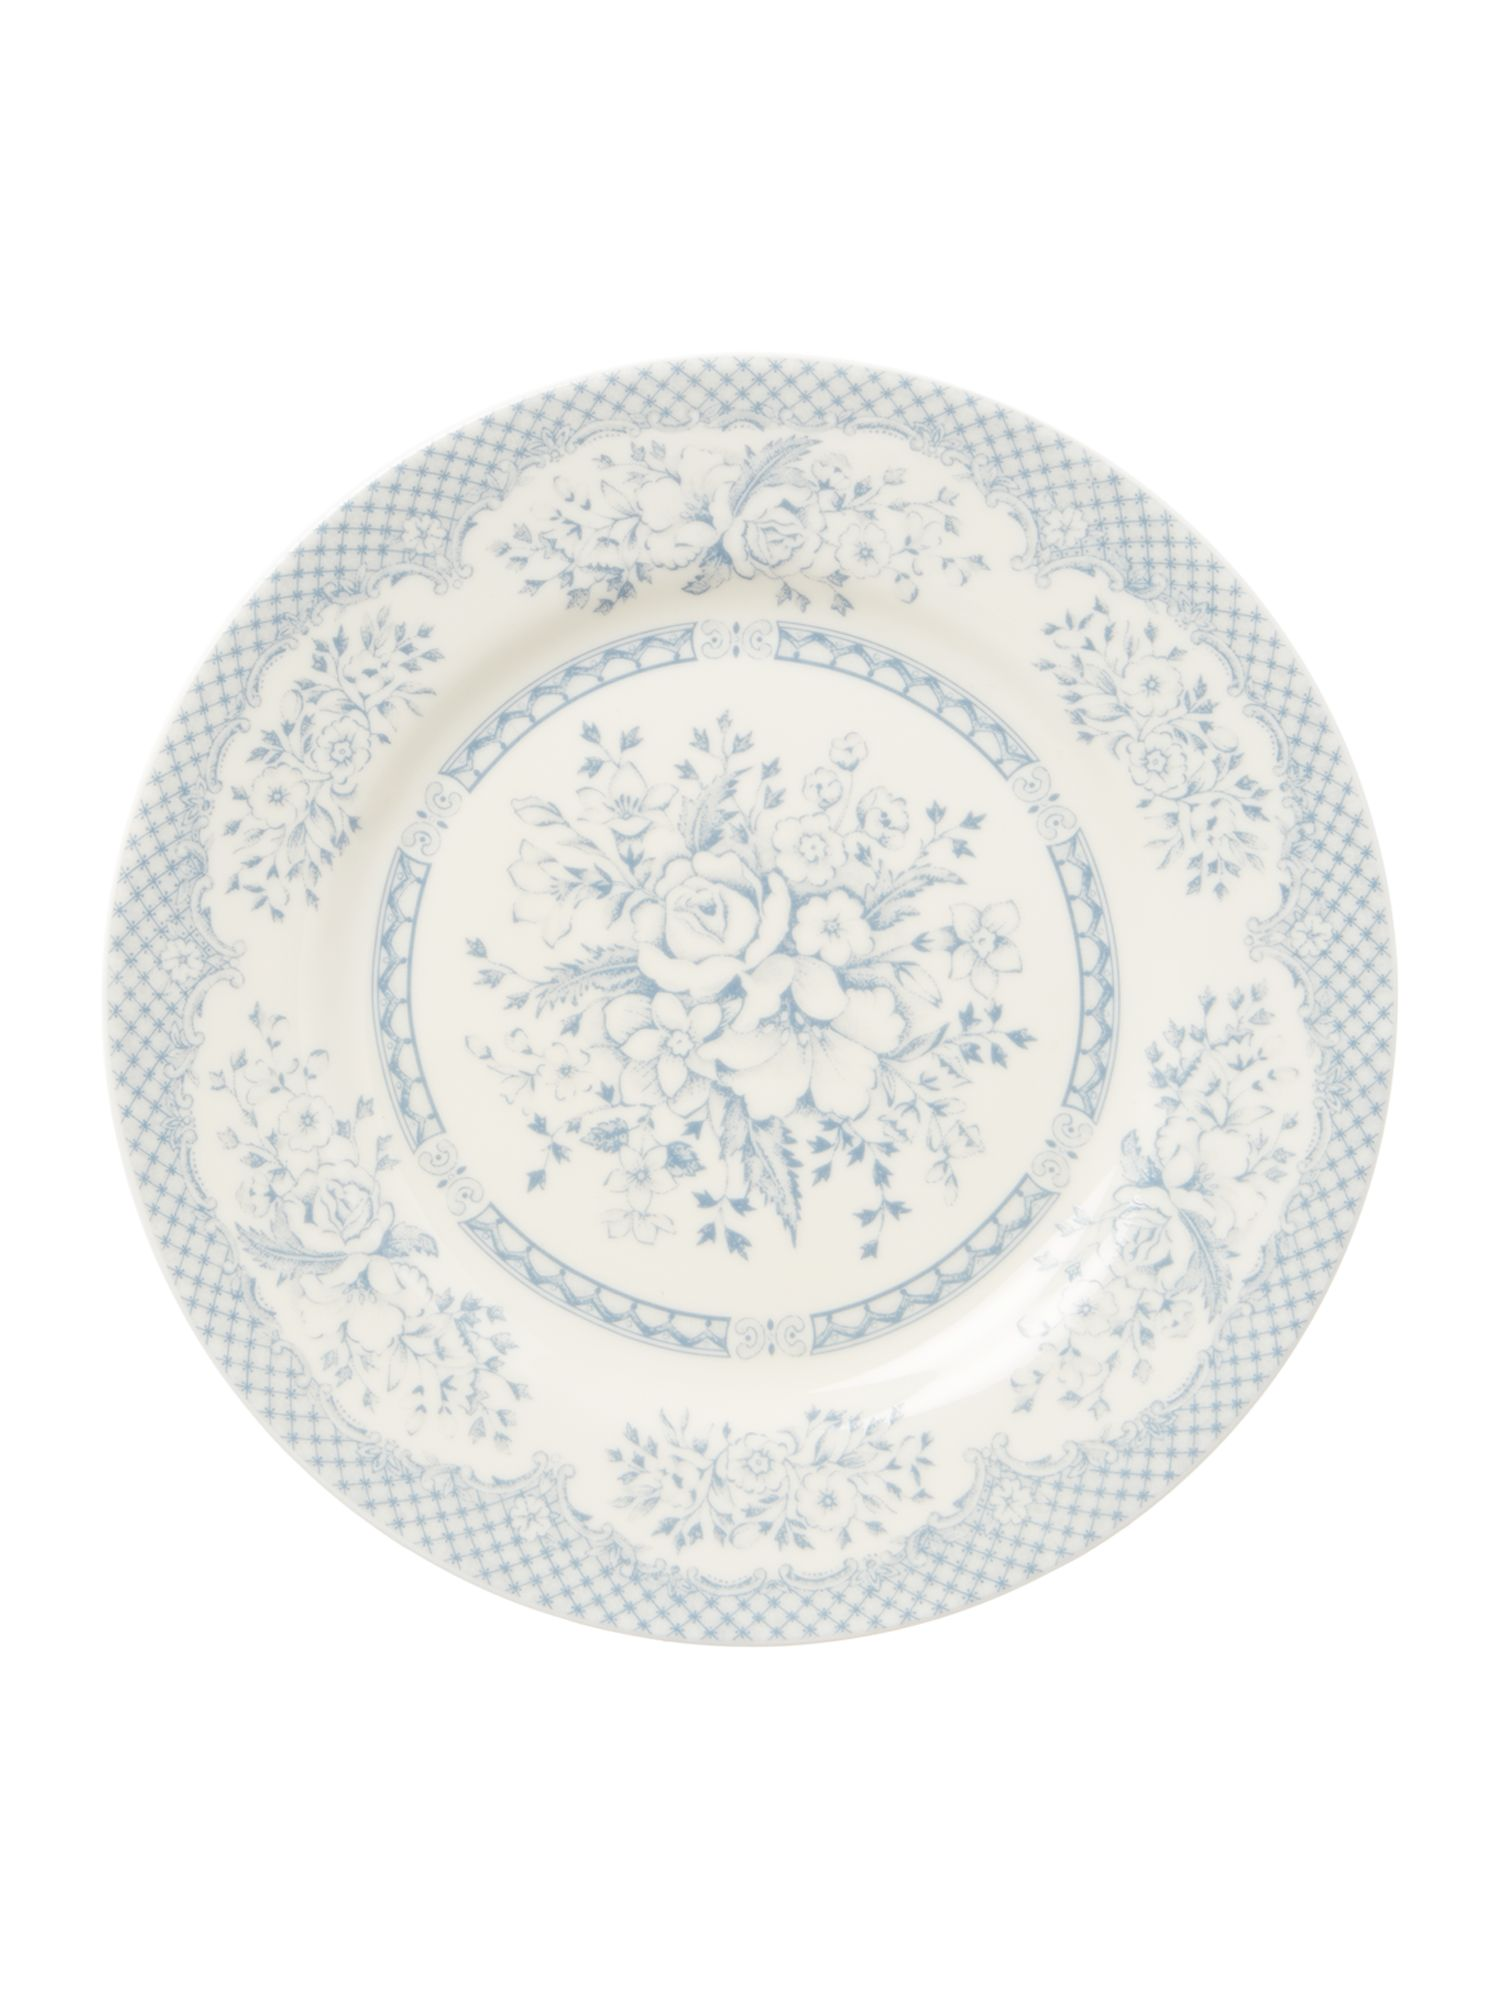 Kew blue side plate